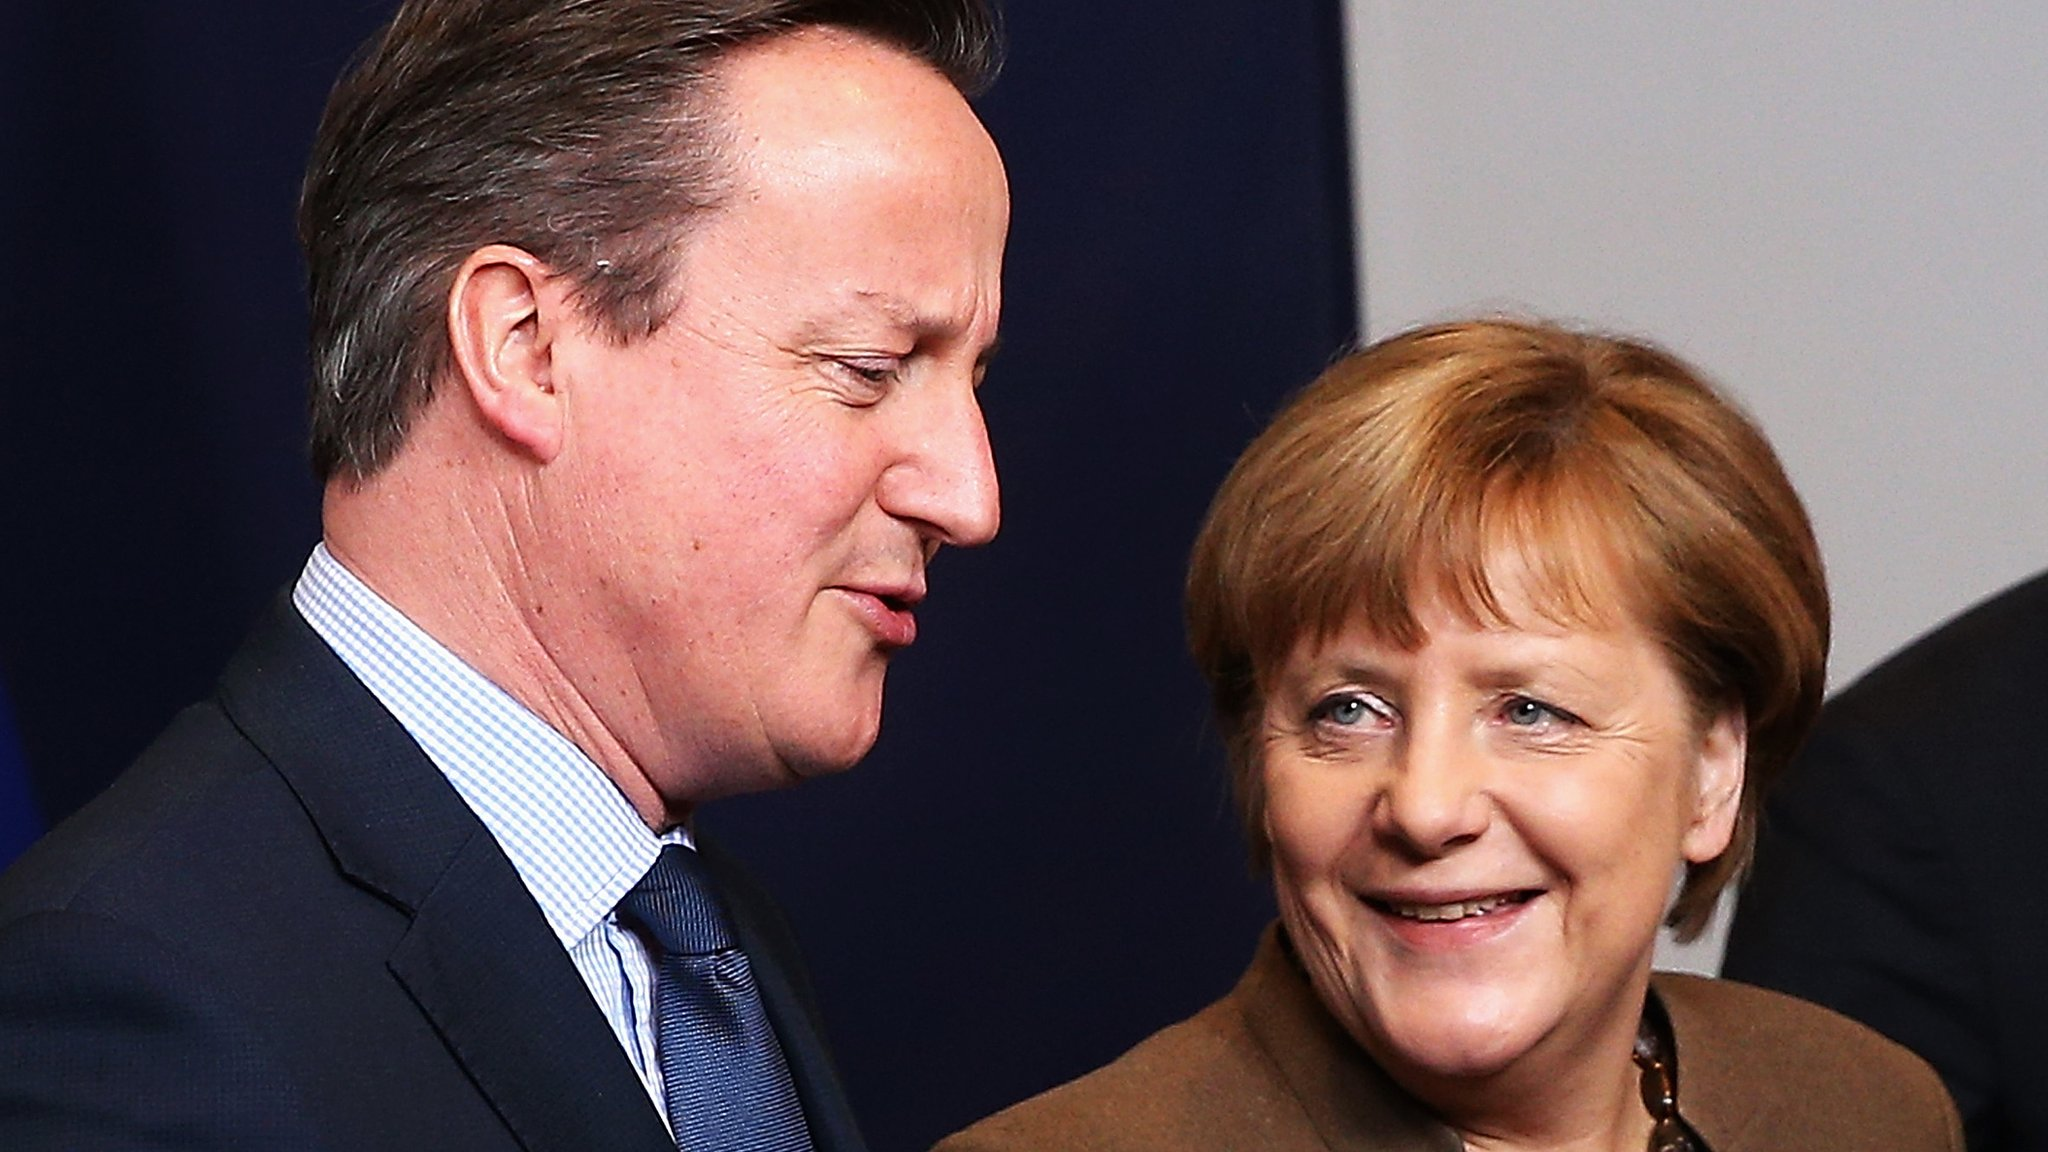 Brexit: Cameron considered last-ditch appeal to Merkel